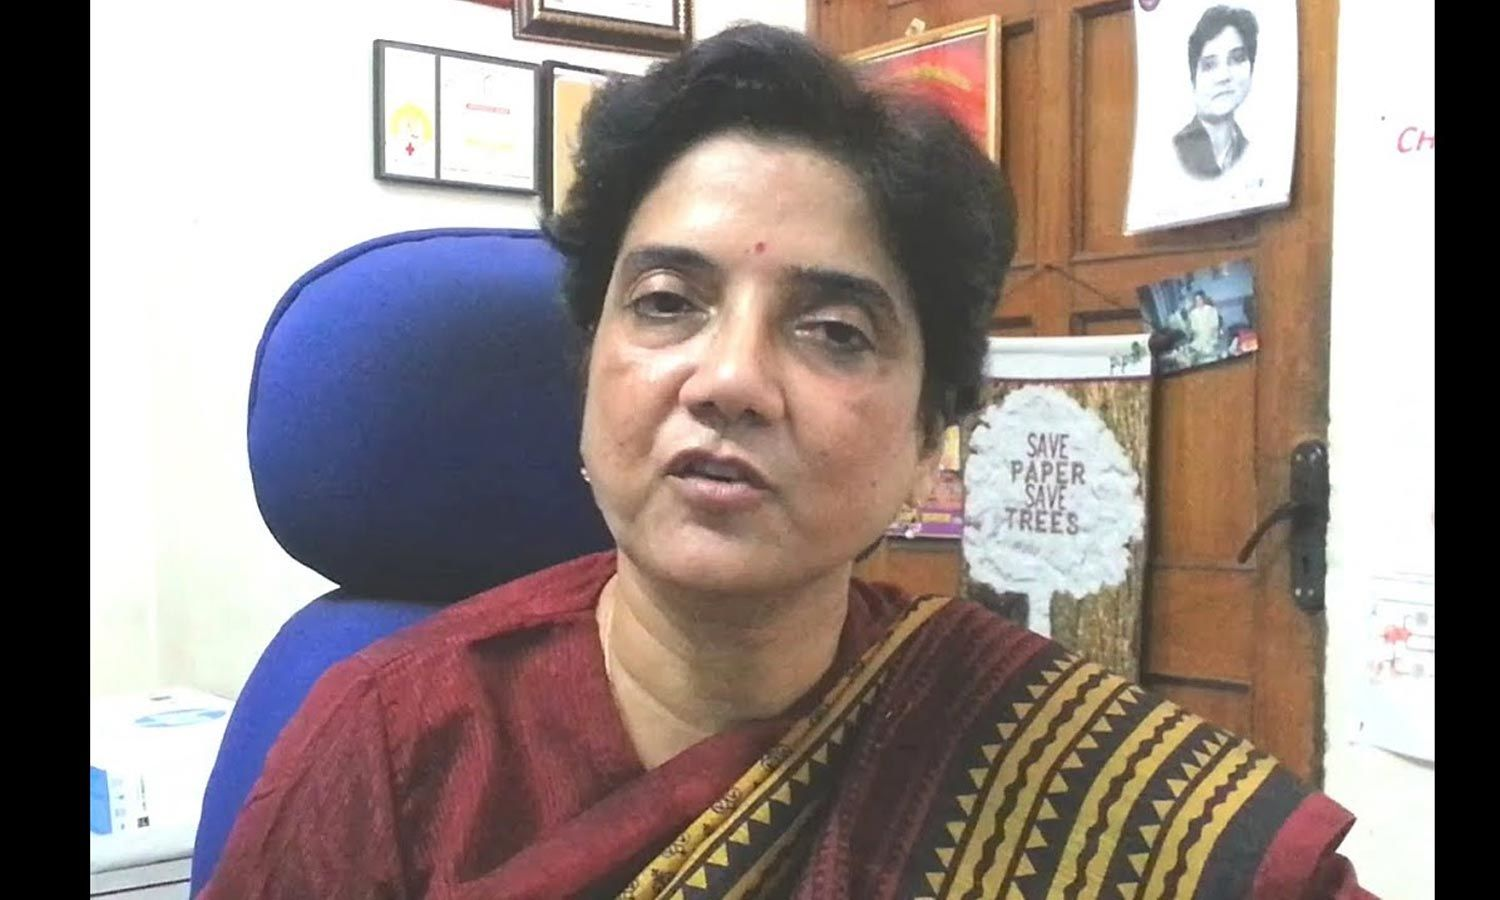 Video made during sting op to disturb peace, says GSVM principal who made derogatory comments